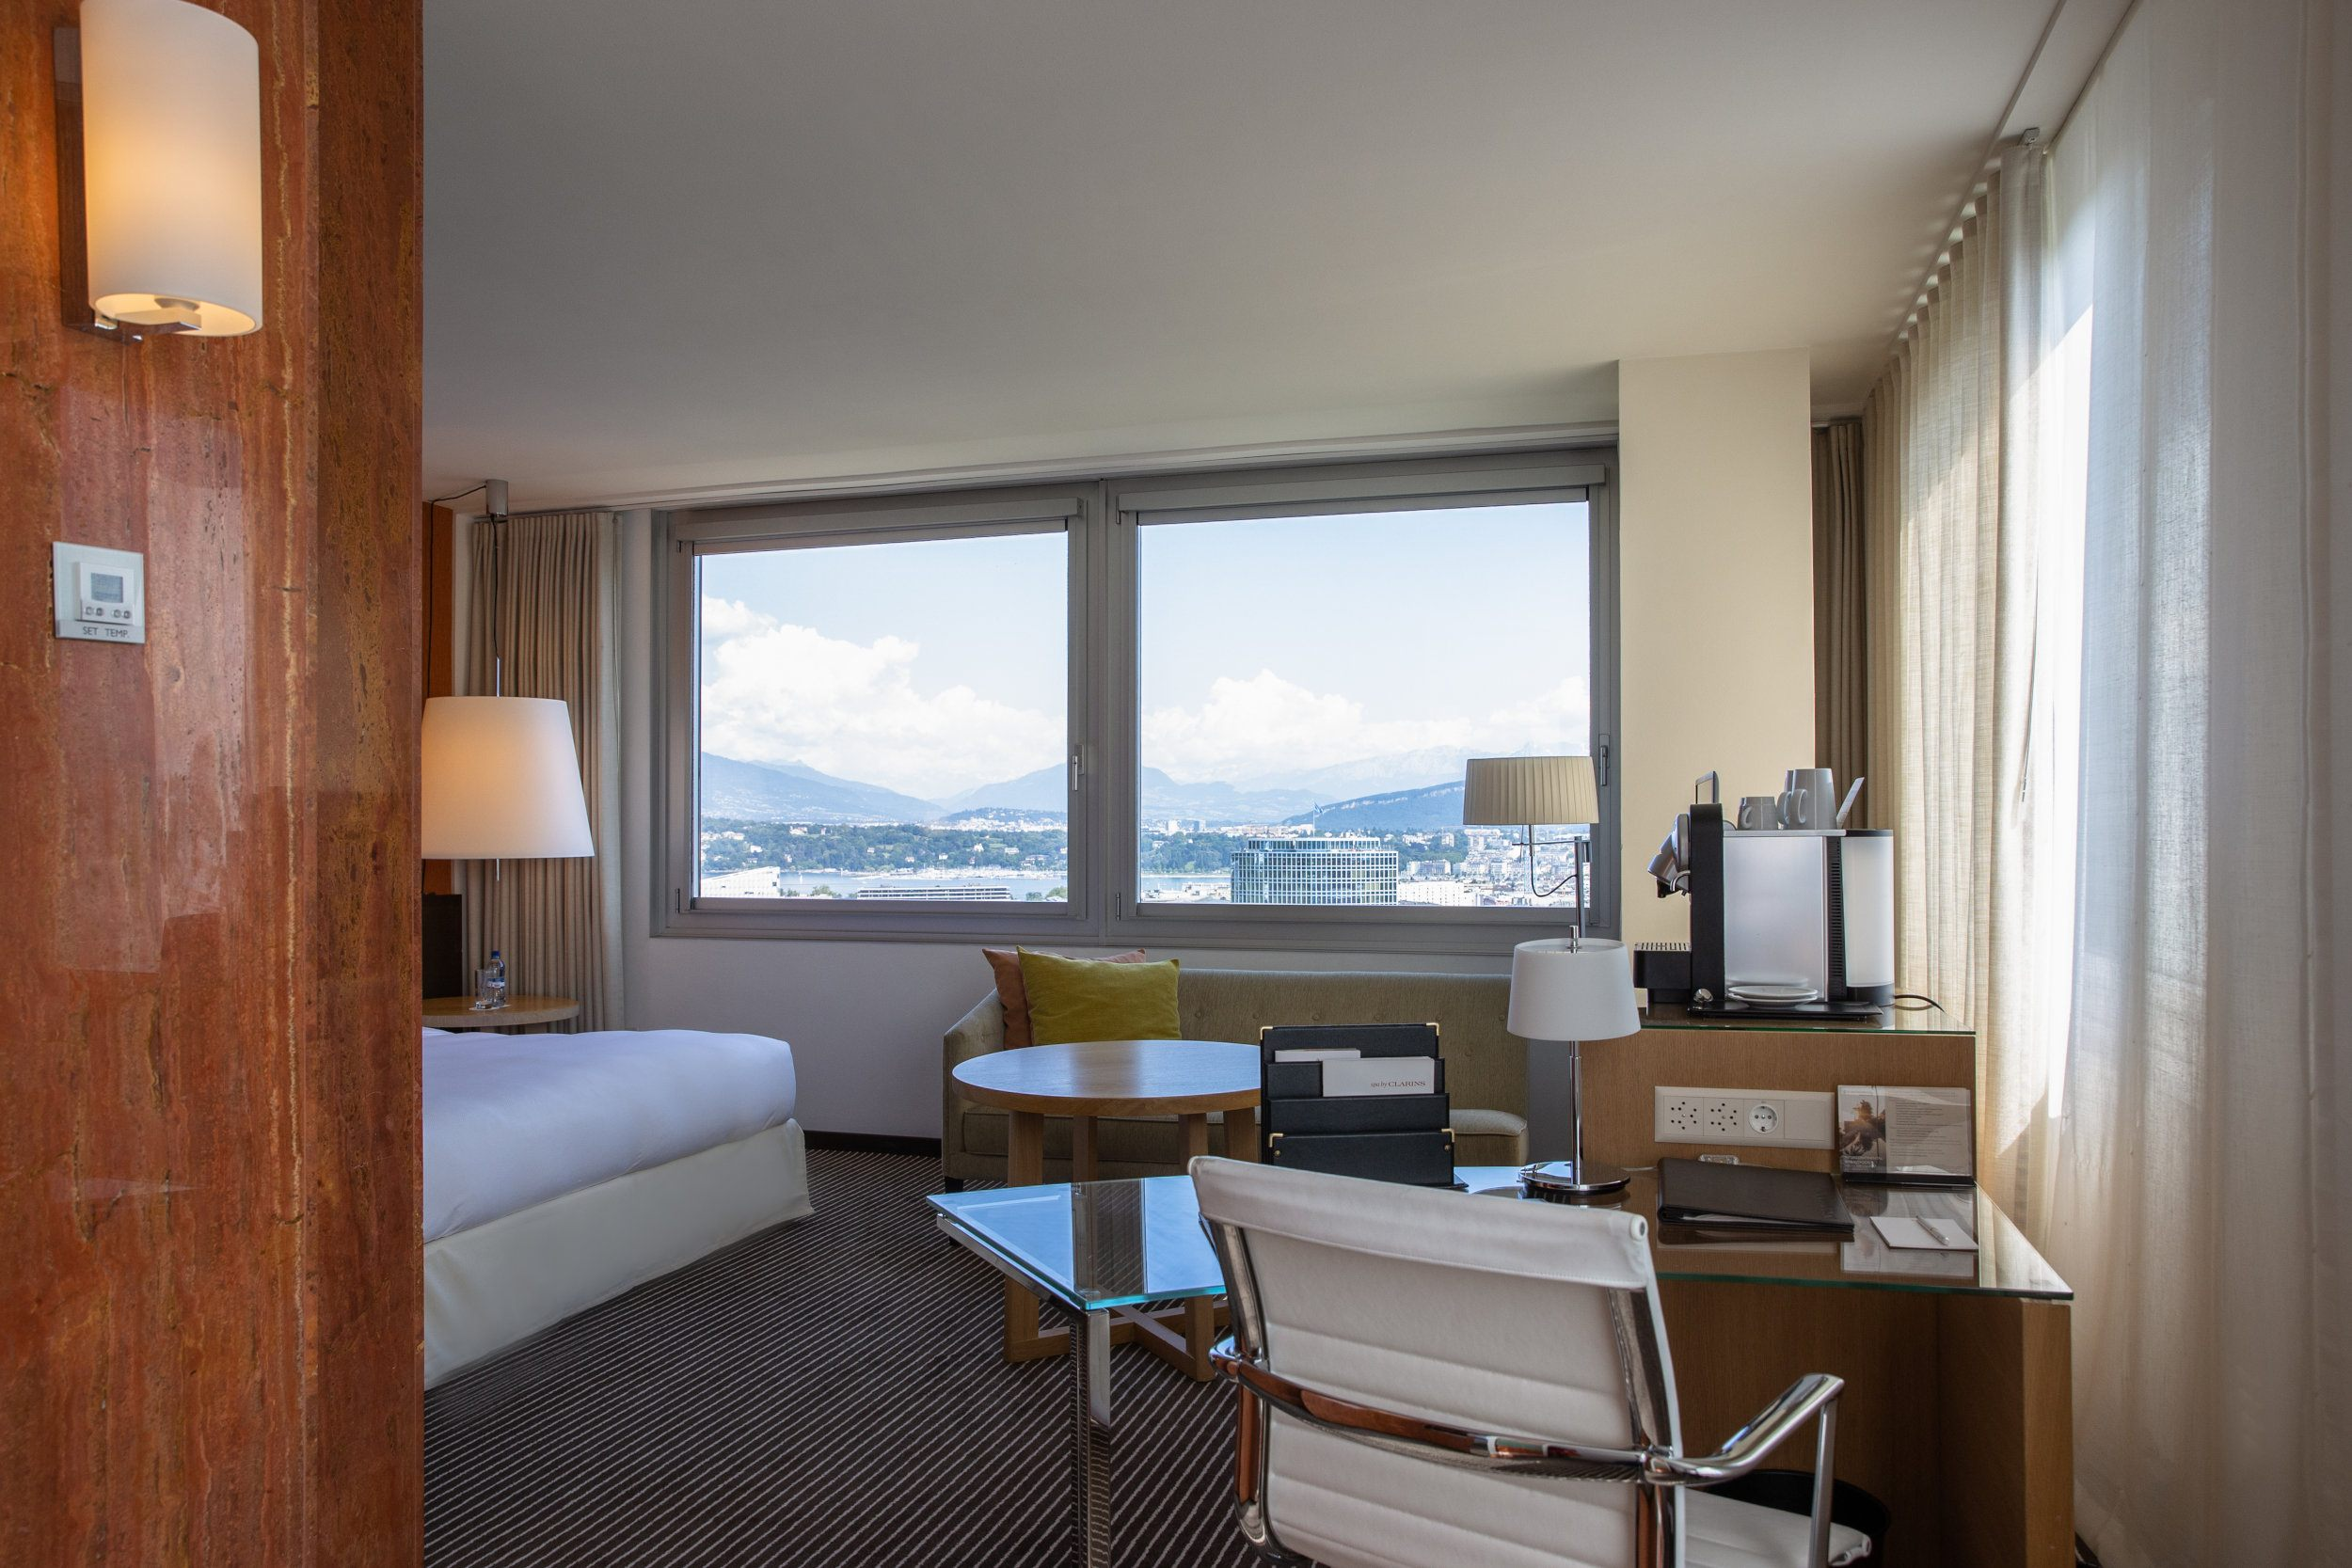 InterContinental-Geneva-Suites-and-rooms-Executive-lake-view-room-4